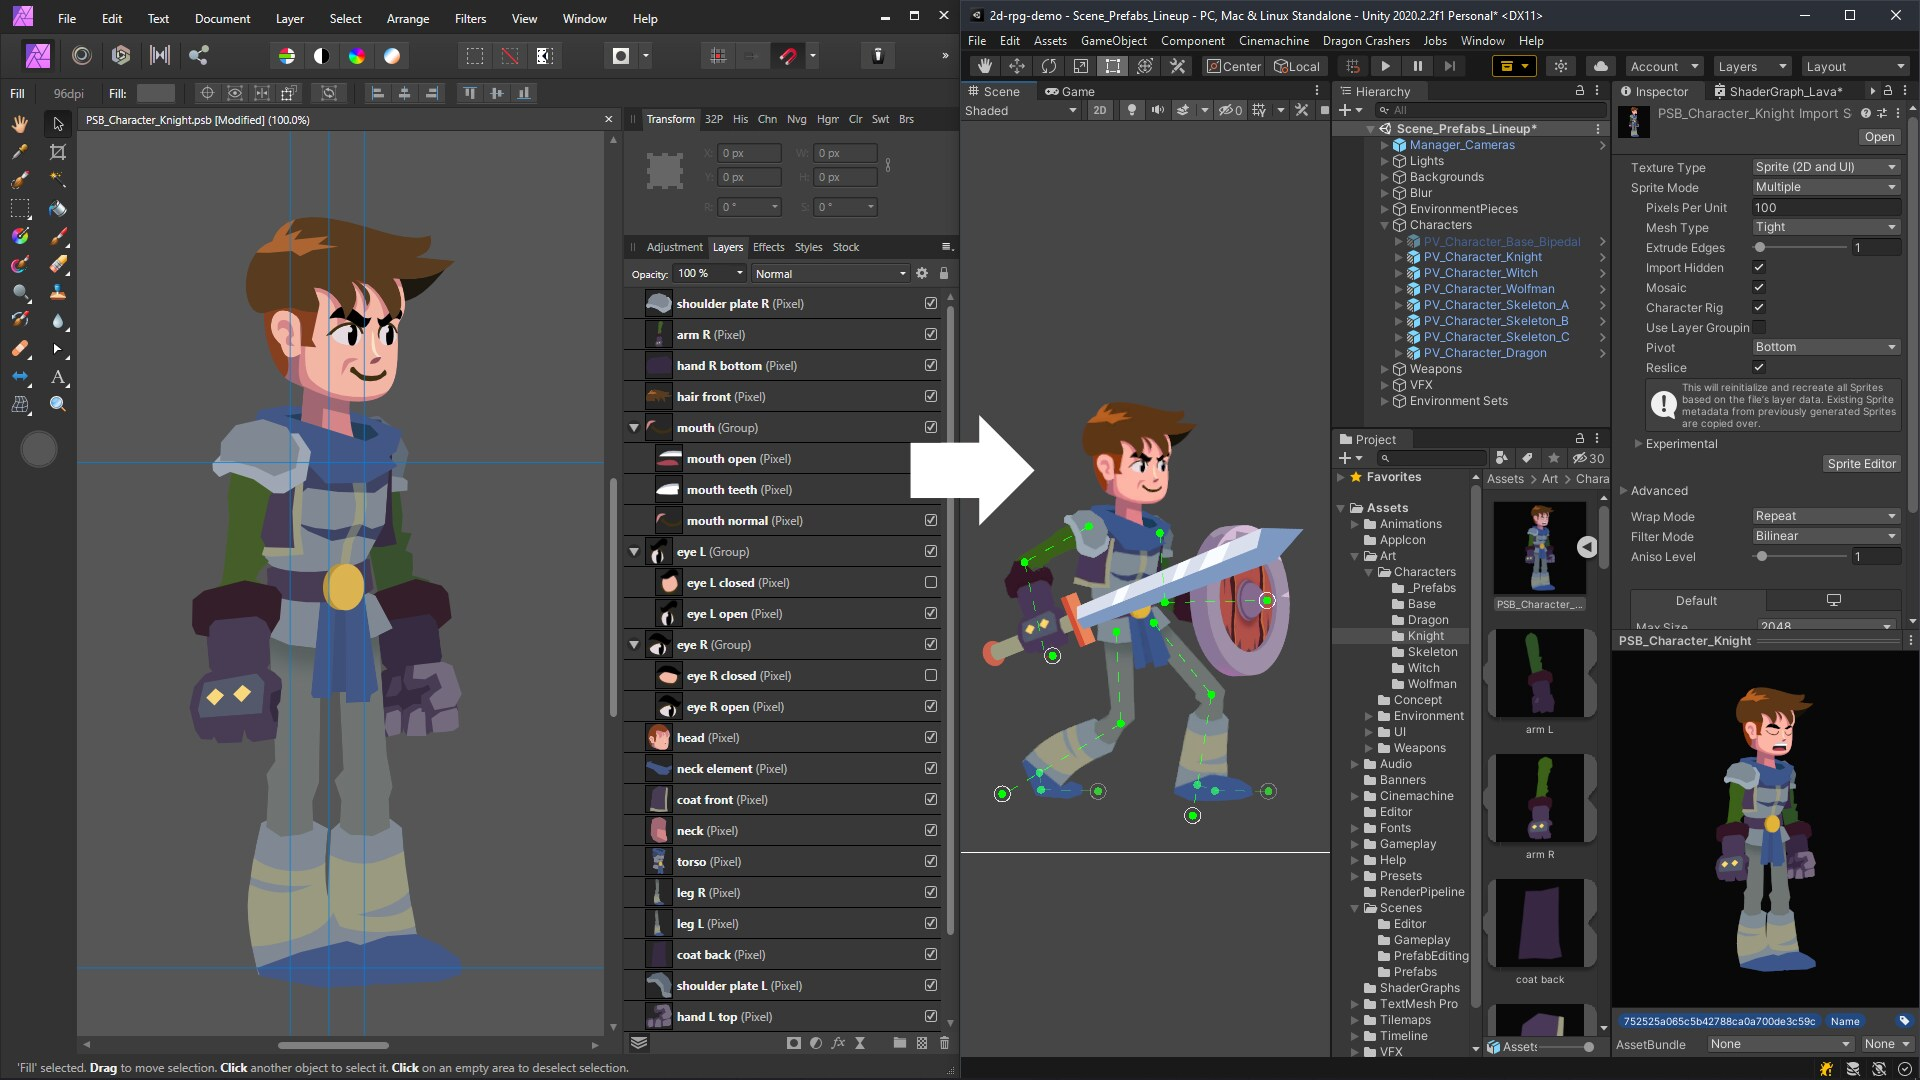 Editor screenshot. Game character is in the middle with all the different layers on the right.